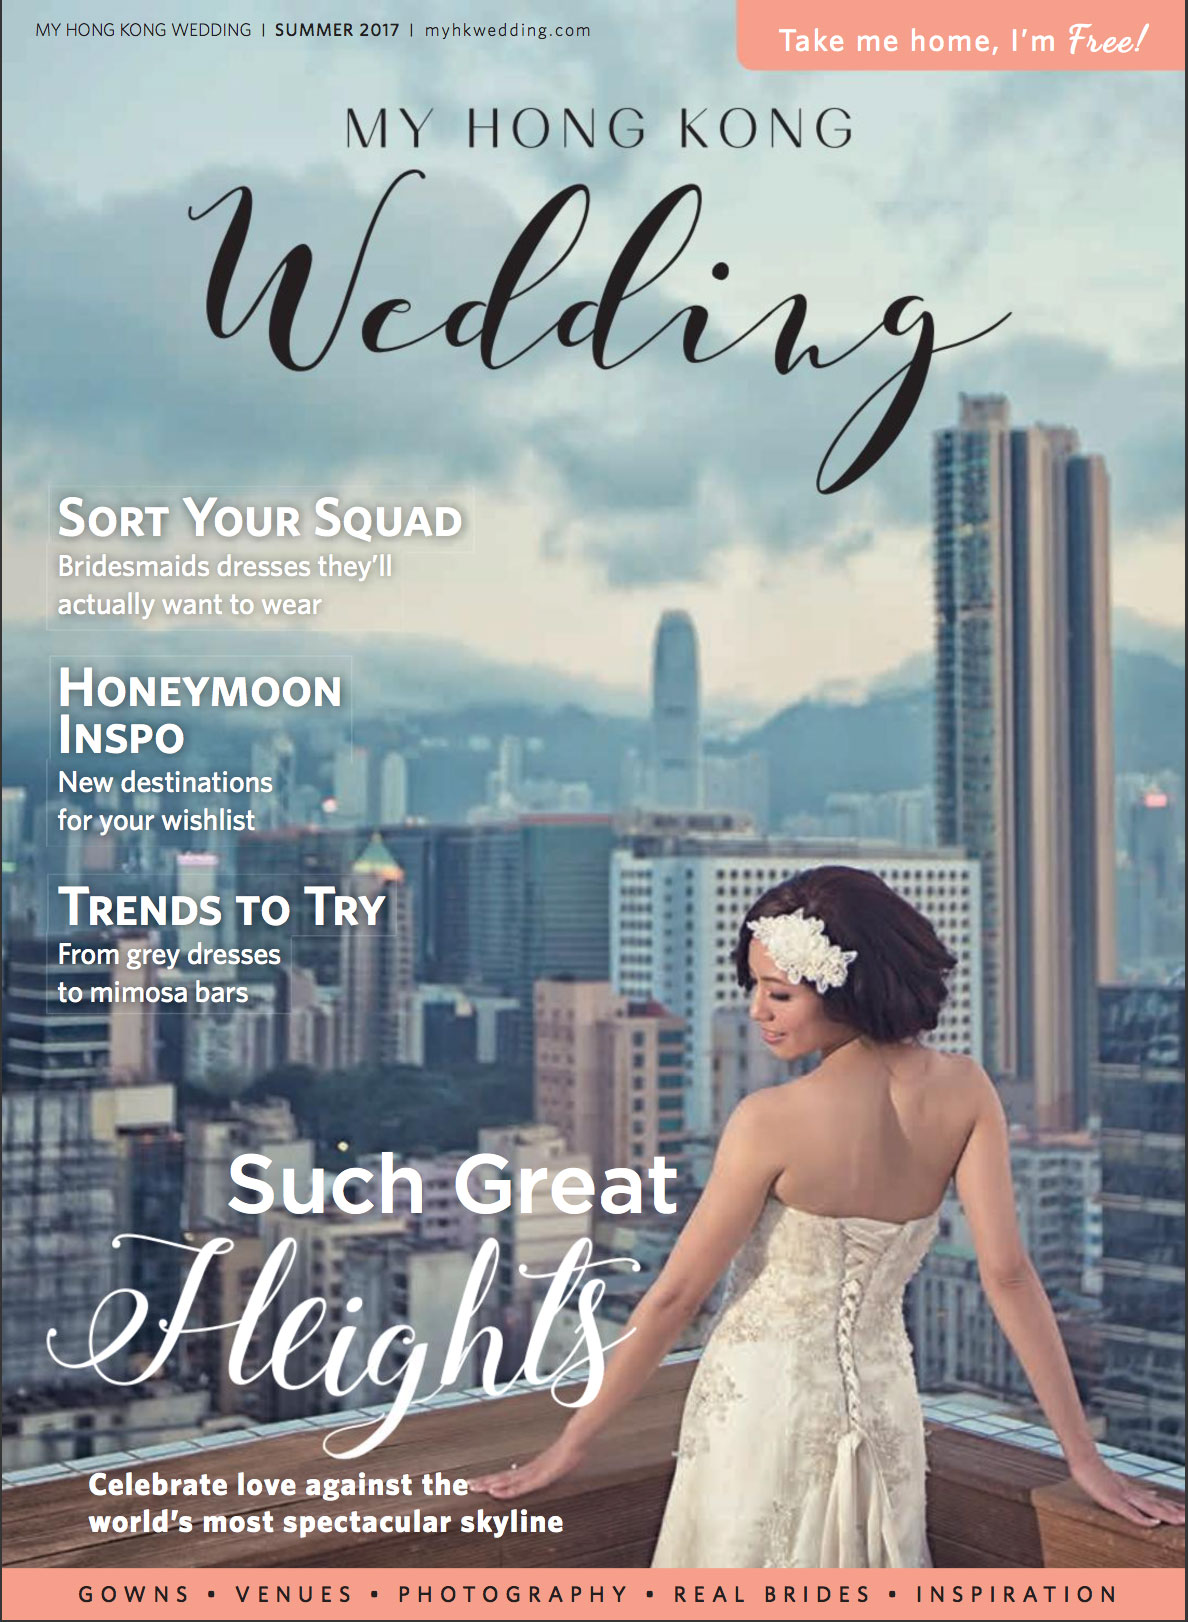 My Hong Kong Wedding